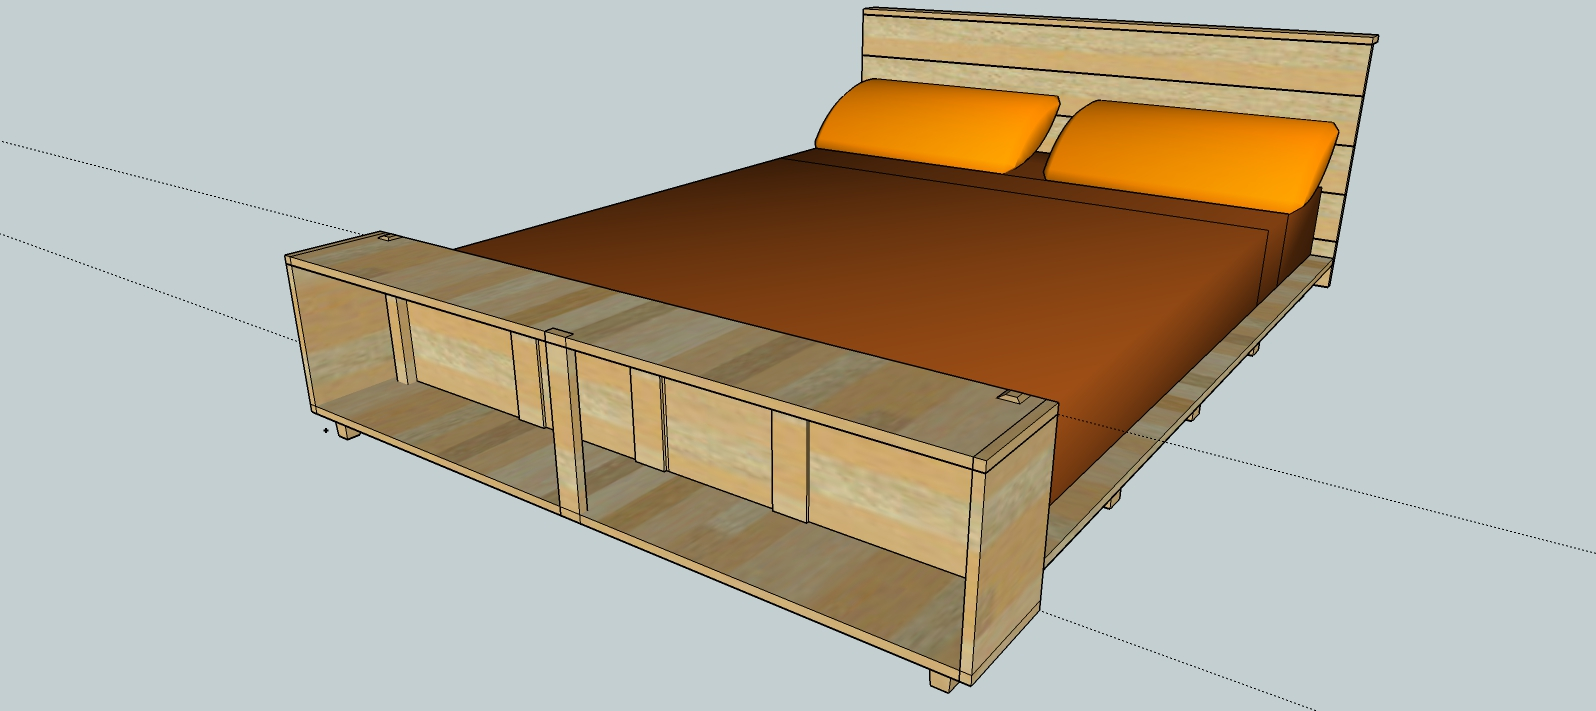 This Week In the Shop: Queen-Sized Bed | woodshopcowboy